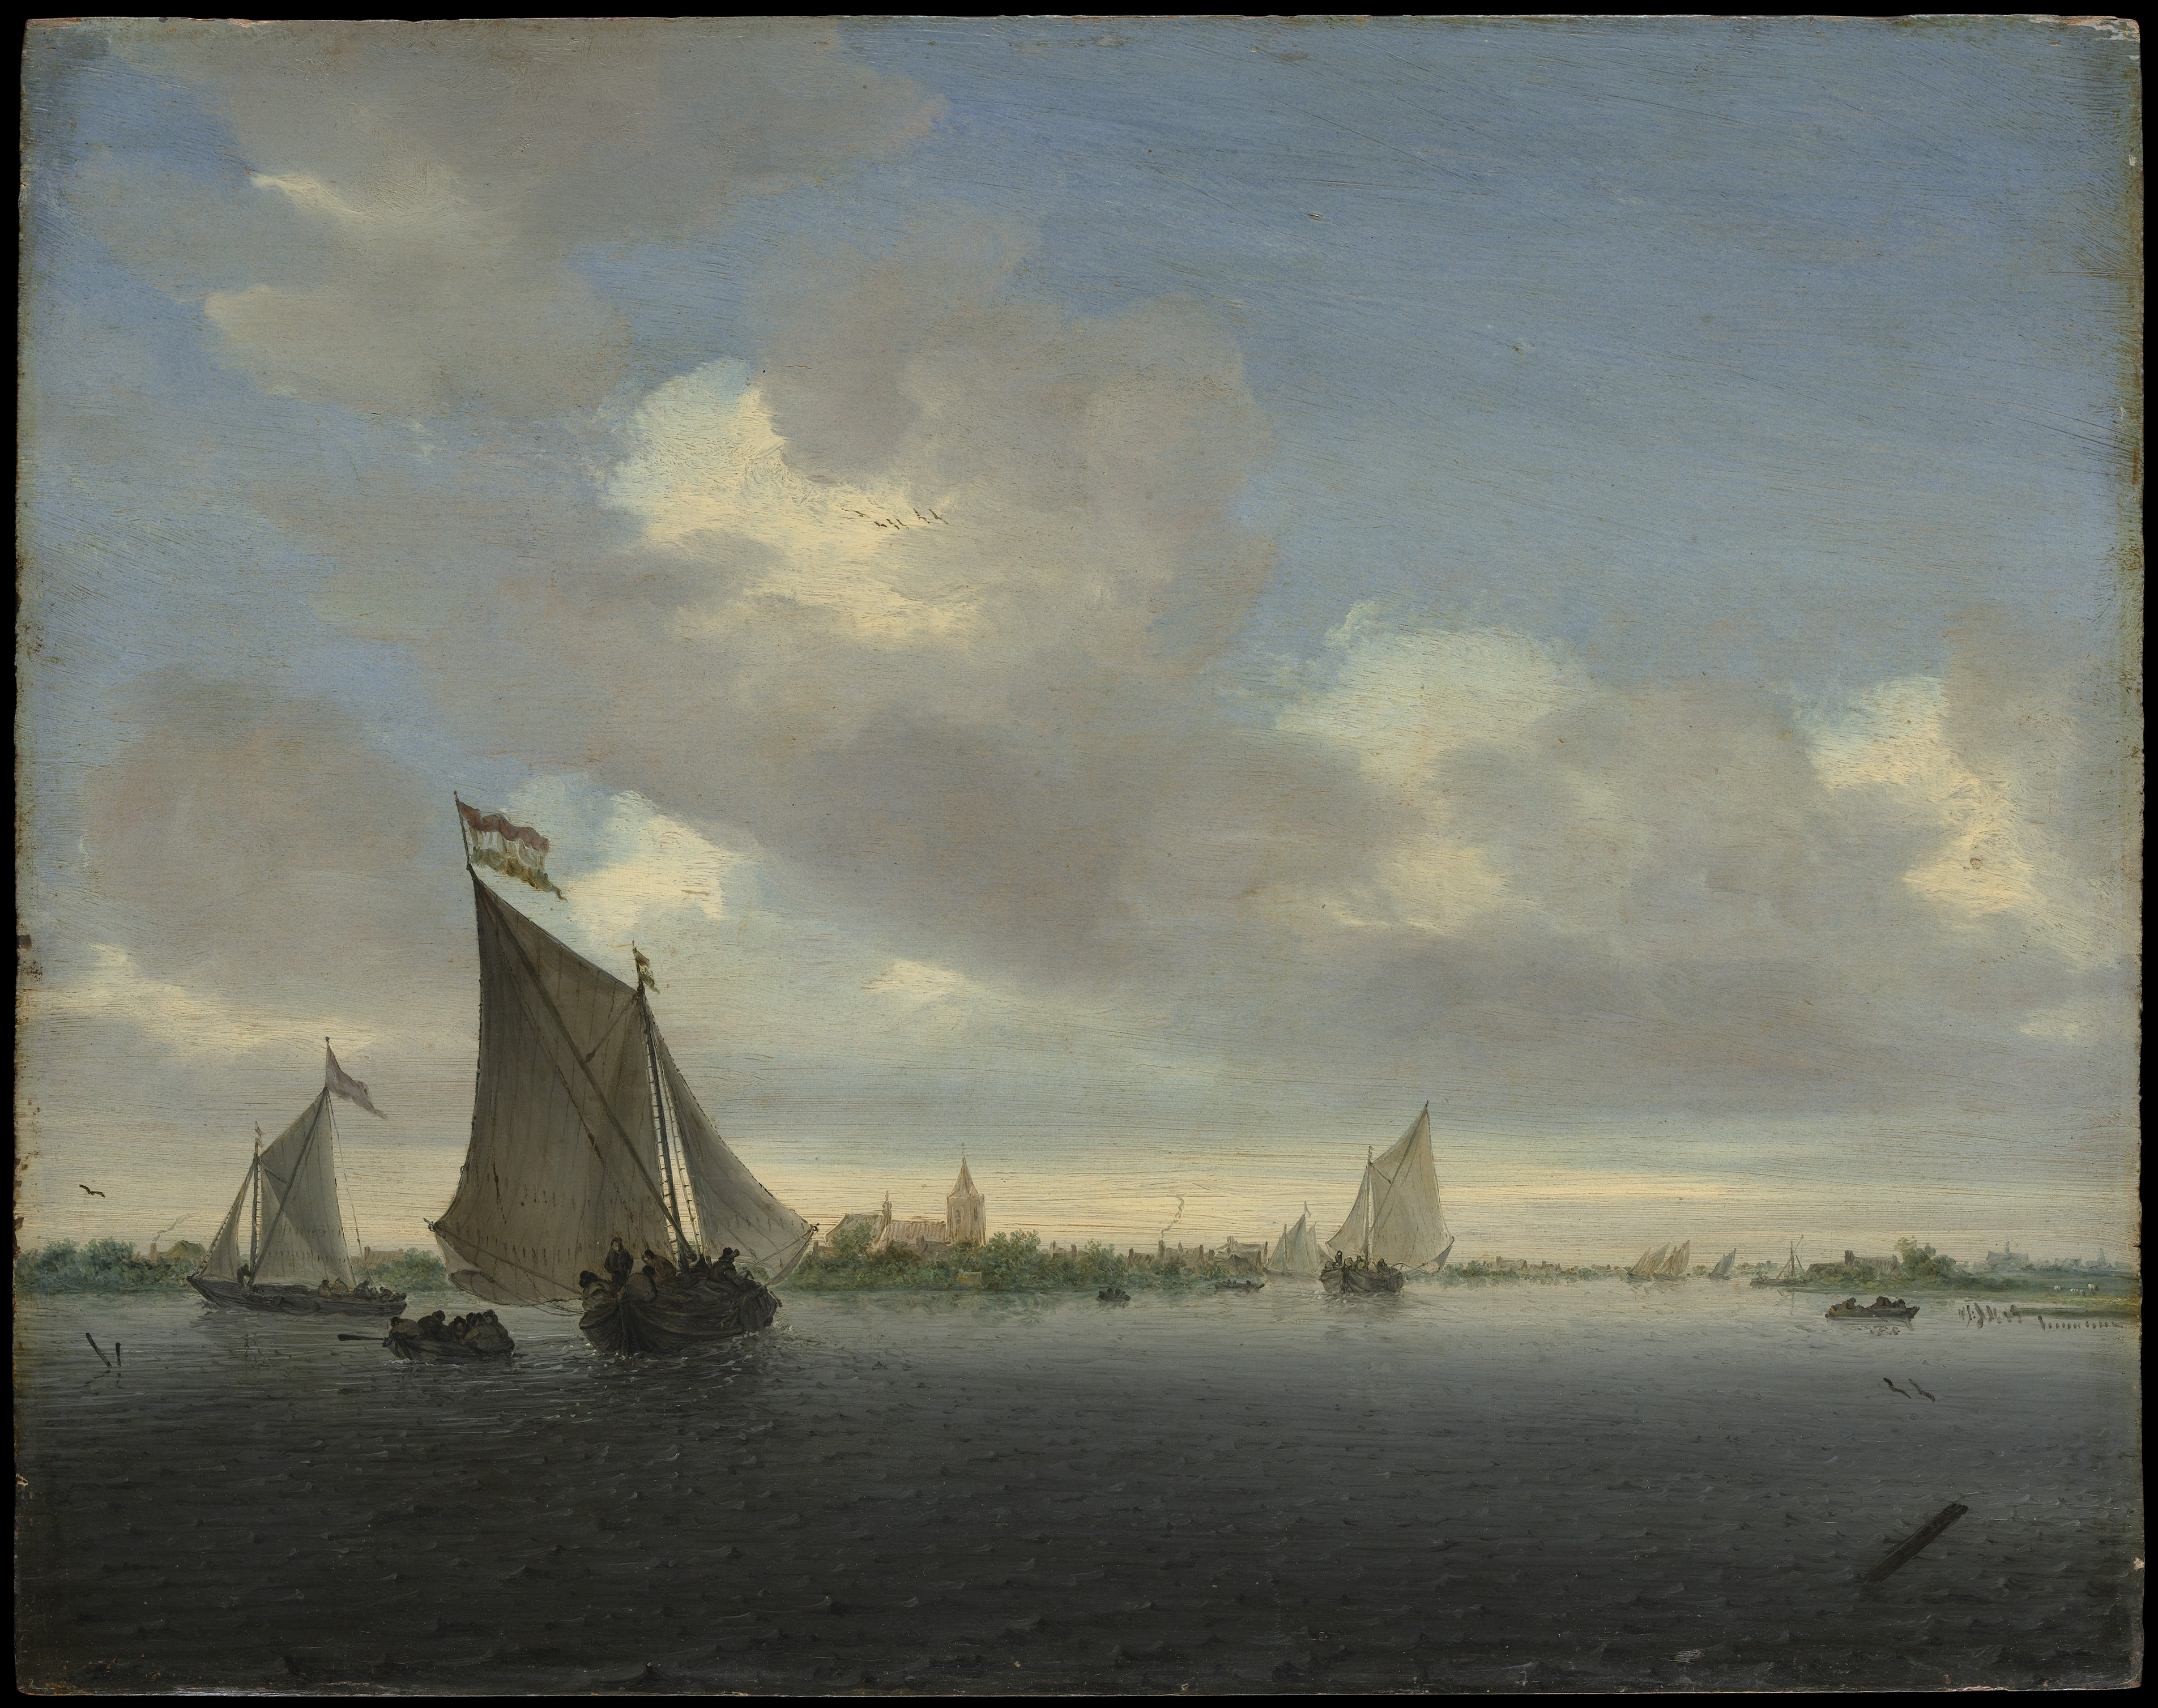 Salomon van Ruysdael  – The Metropolitan Museum of Art 71.98.  Title: Marine. Date: 1650. Materials: oil on wood. Dimensions: 34.6 x 43.5 cm. Inscriptions: SvR [vR in monogram]·1650 (lower right, on plank). Acquisition date: 1871. Nr.: 71.98.  Source: http://images.metmuseum.org/CRDImages/ep/original/DP145942.jpg. I have changed the contrast of the original photo.